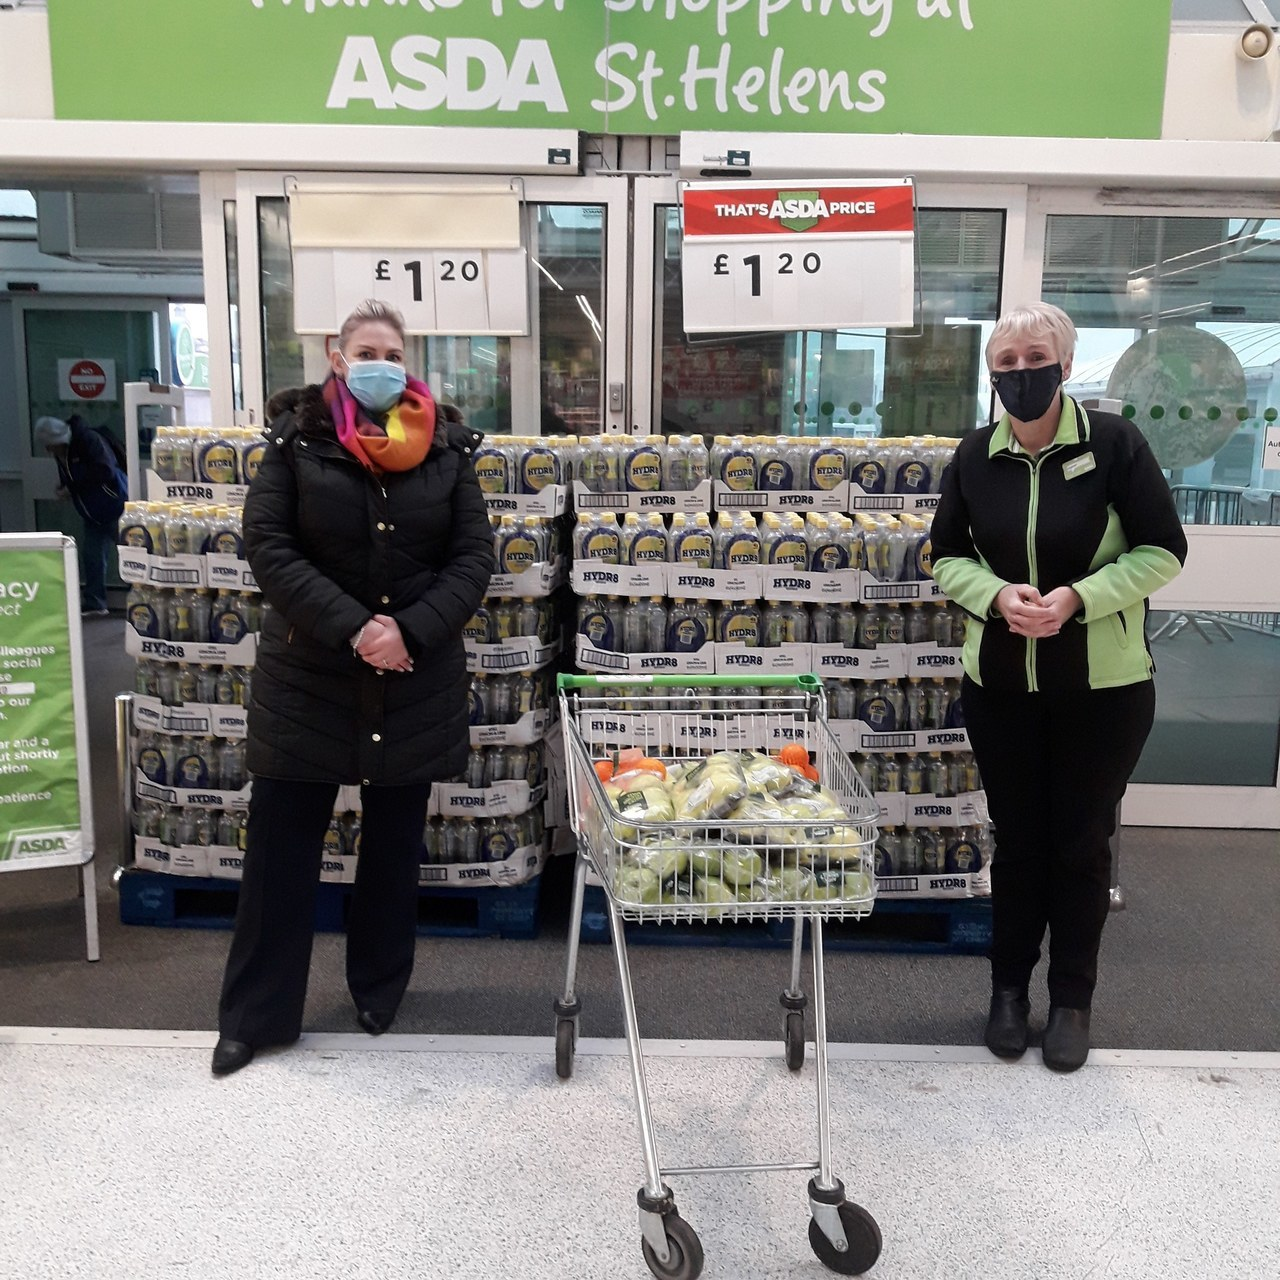 Apples for the pupils at local primary school | Asda St Helens